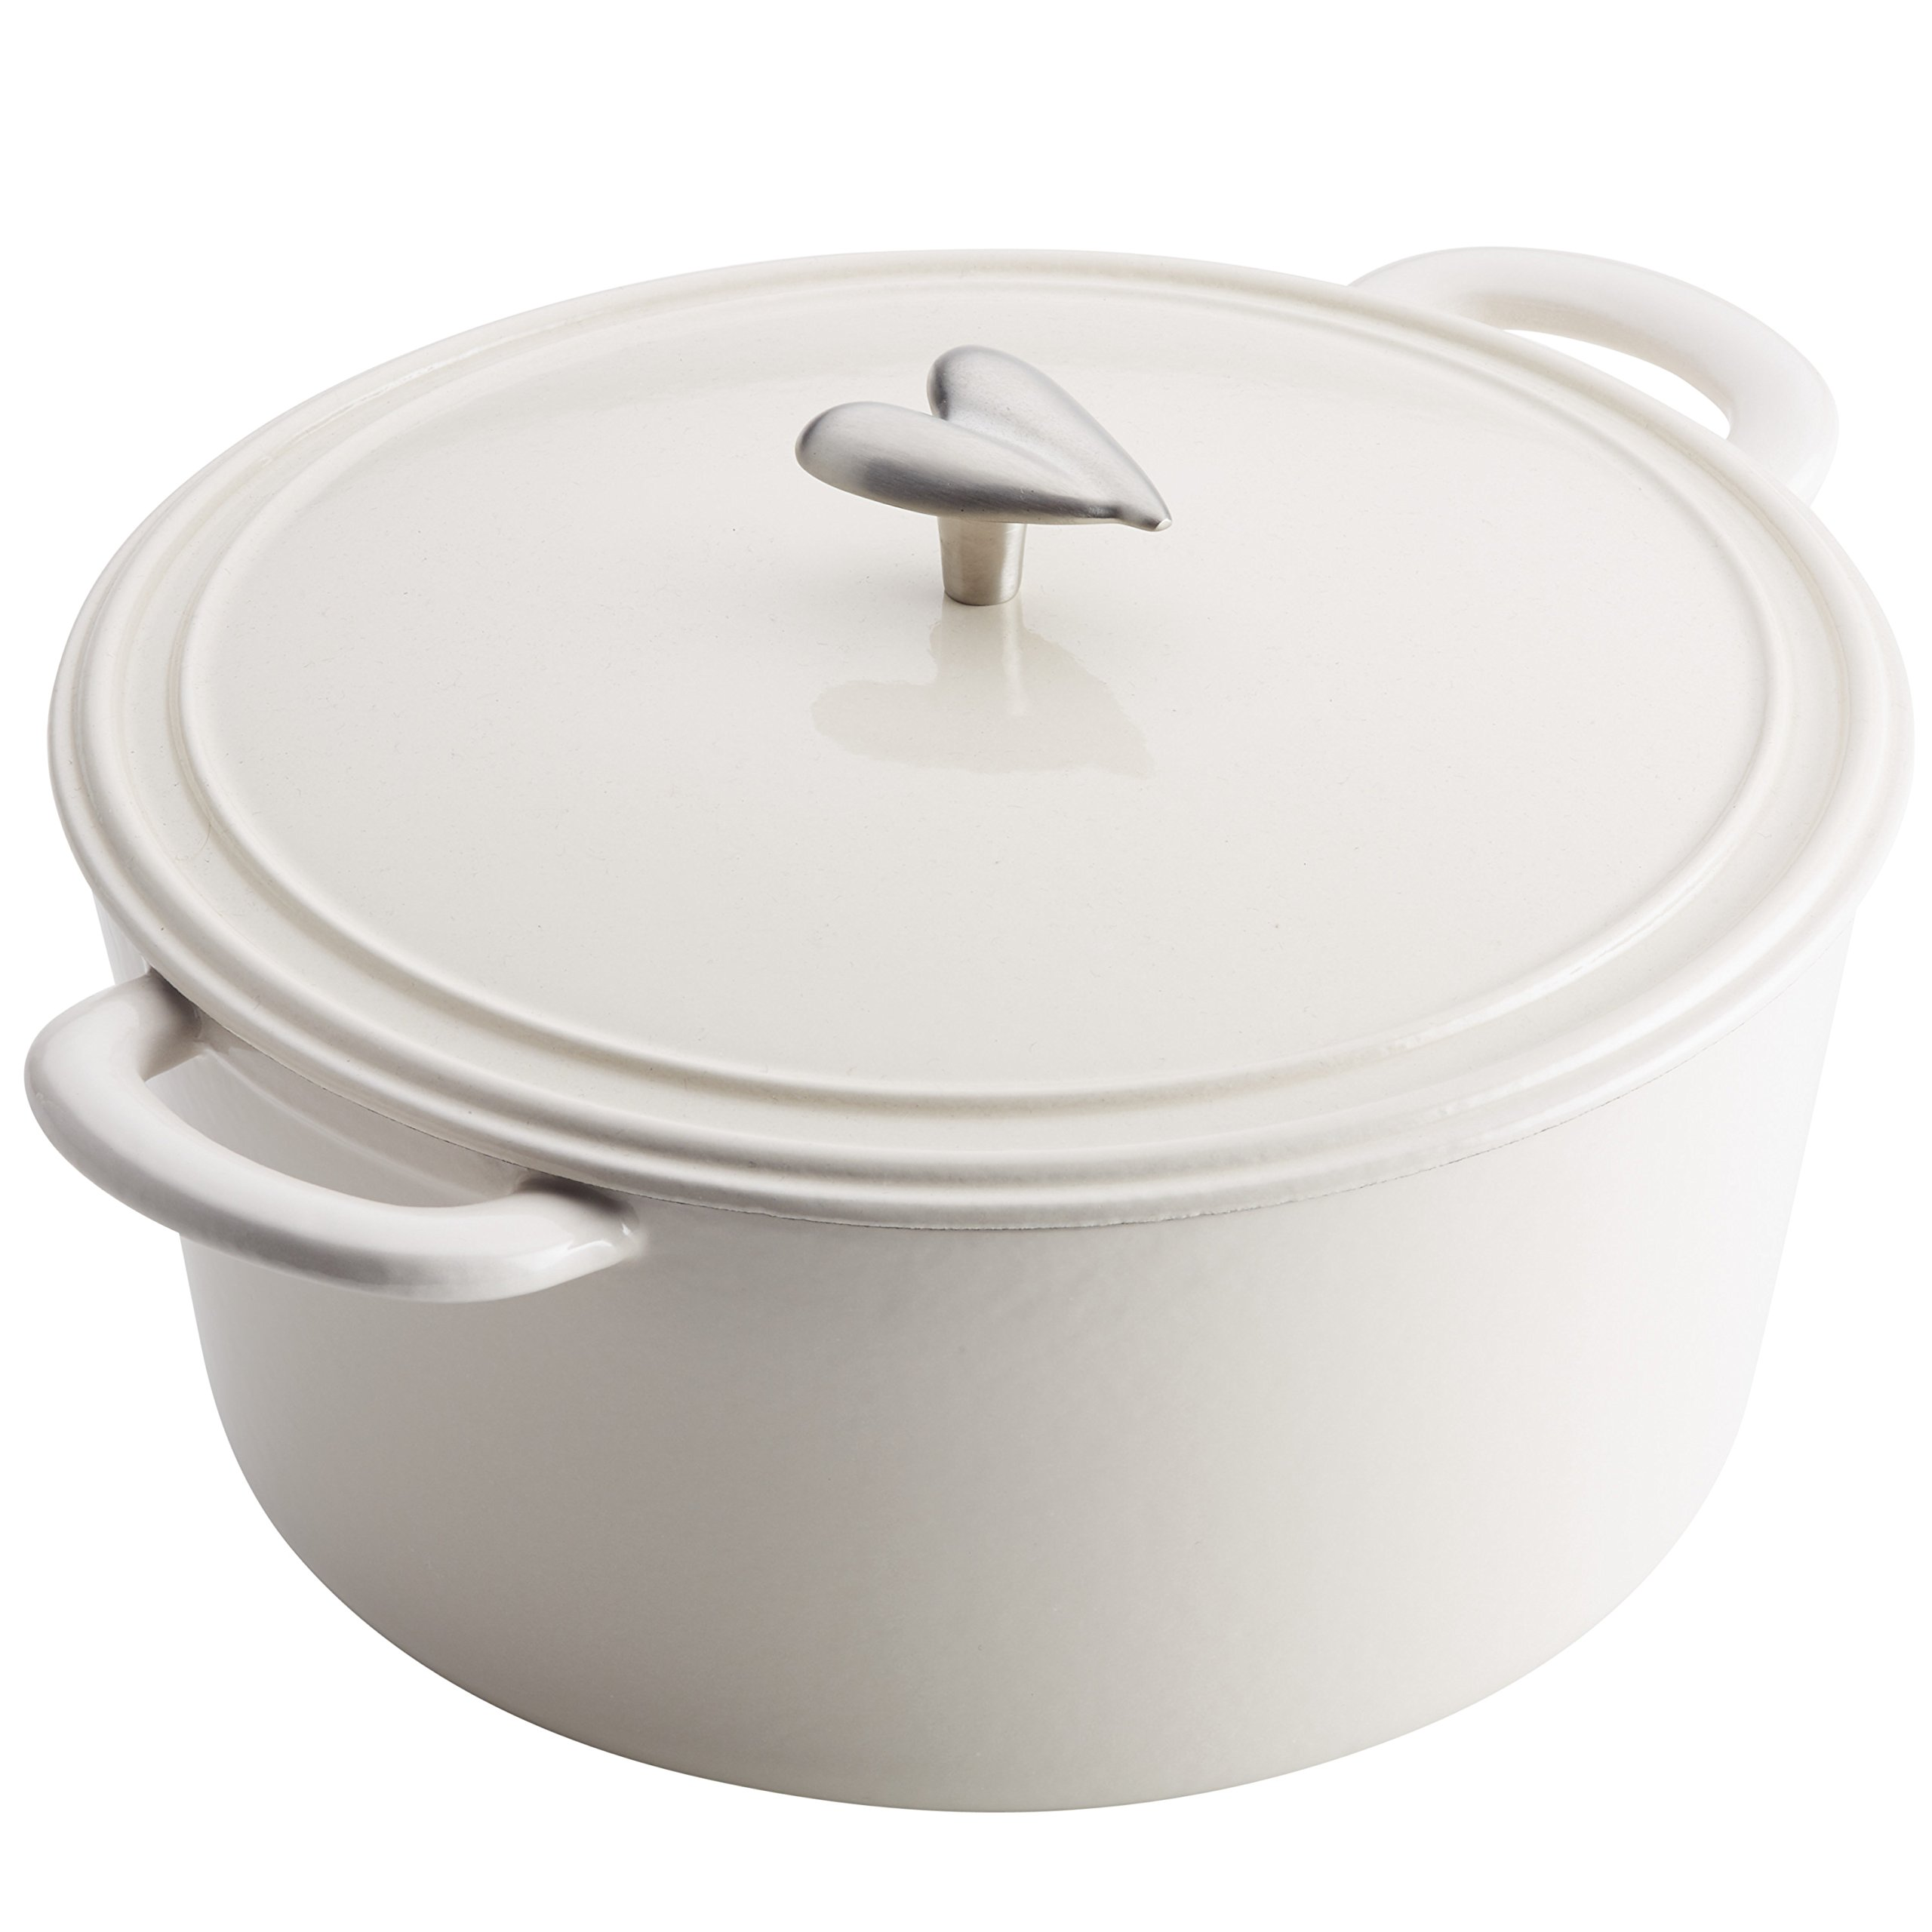 Ayesha Curry 47432 Cast Iron Dutch Oven, 6 Quart, French Vanilla by Ayesha Curry (Image #3)